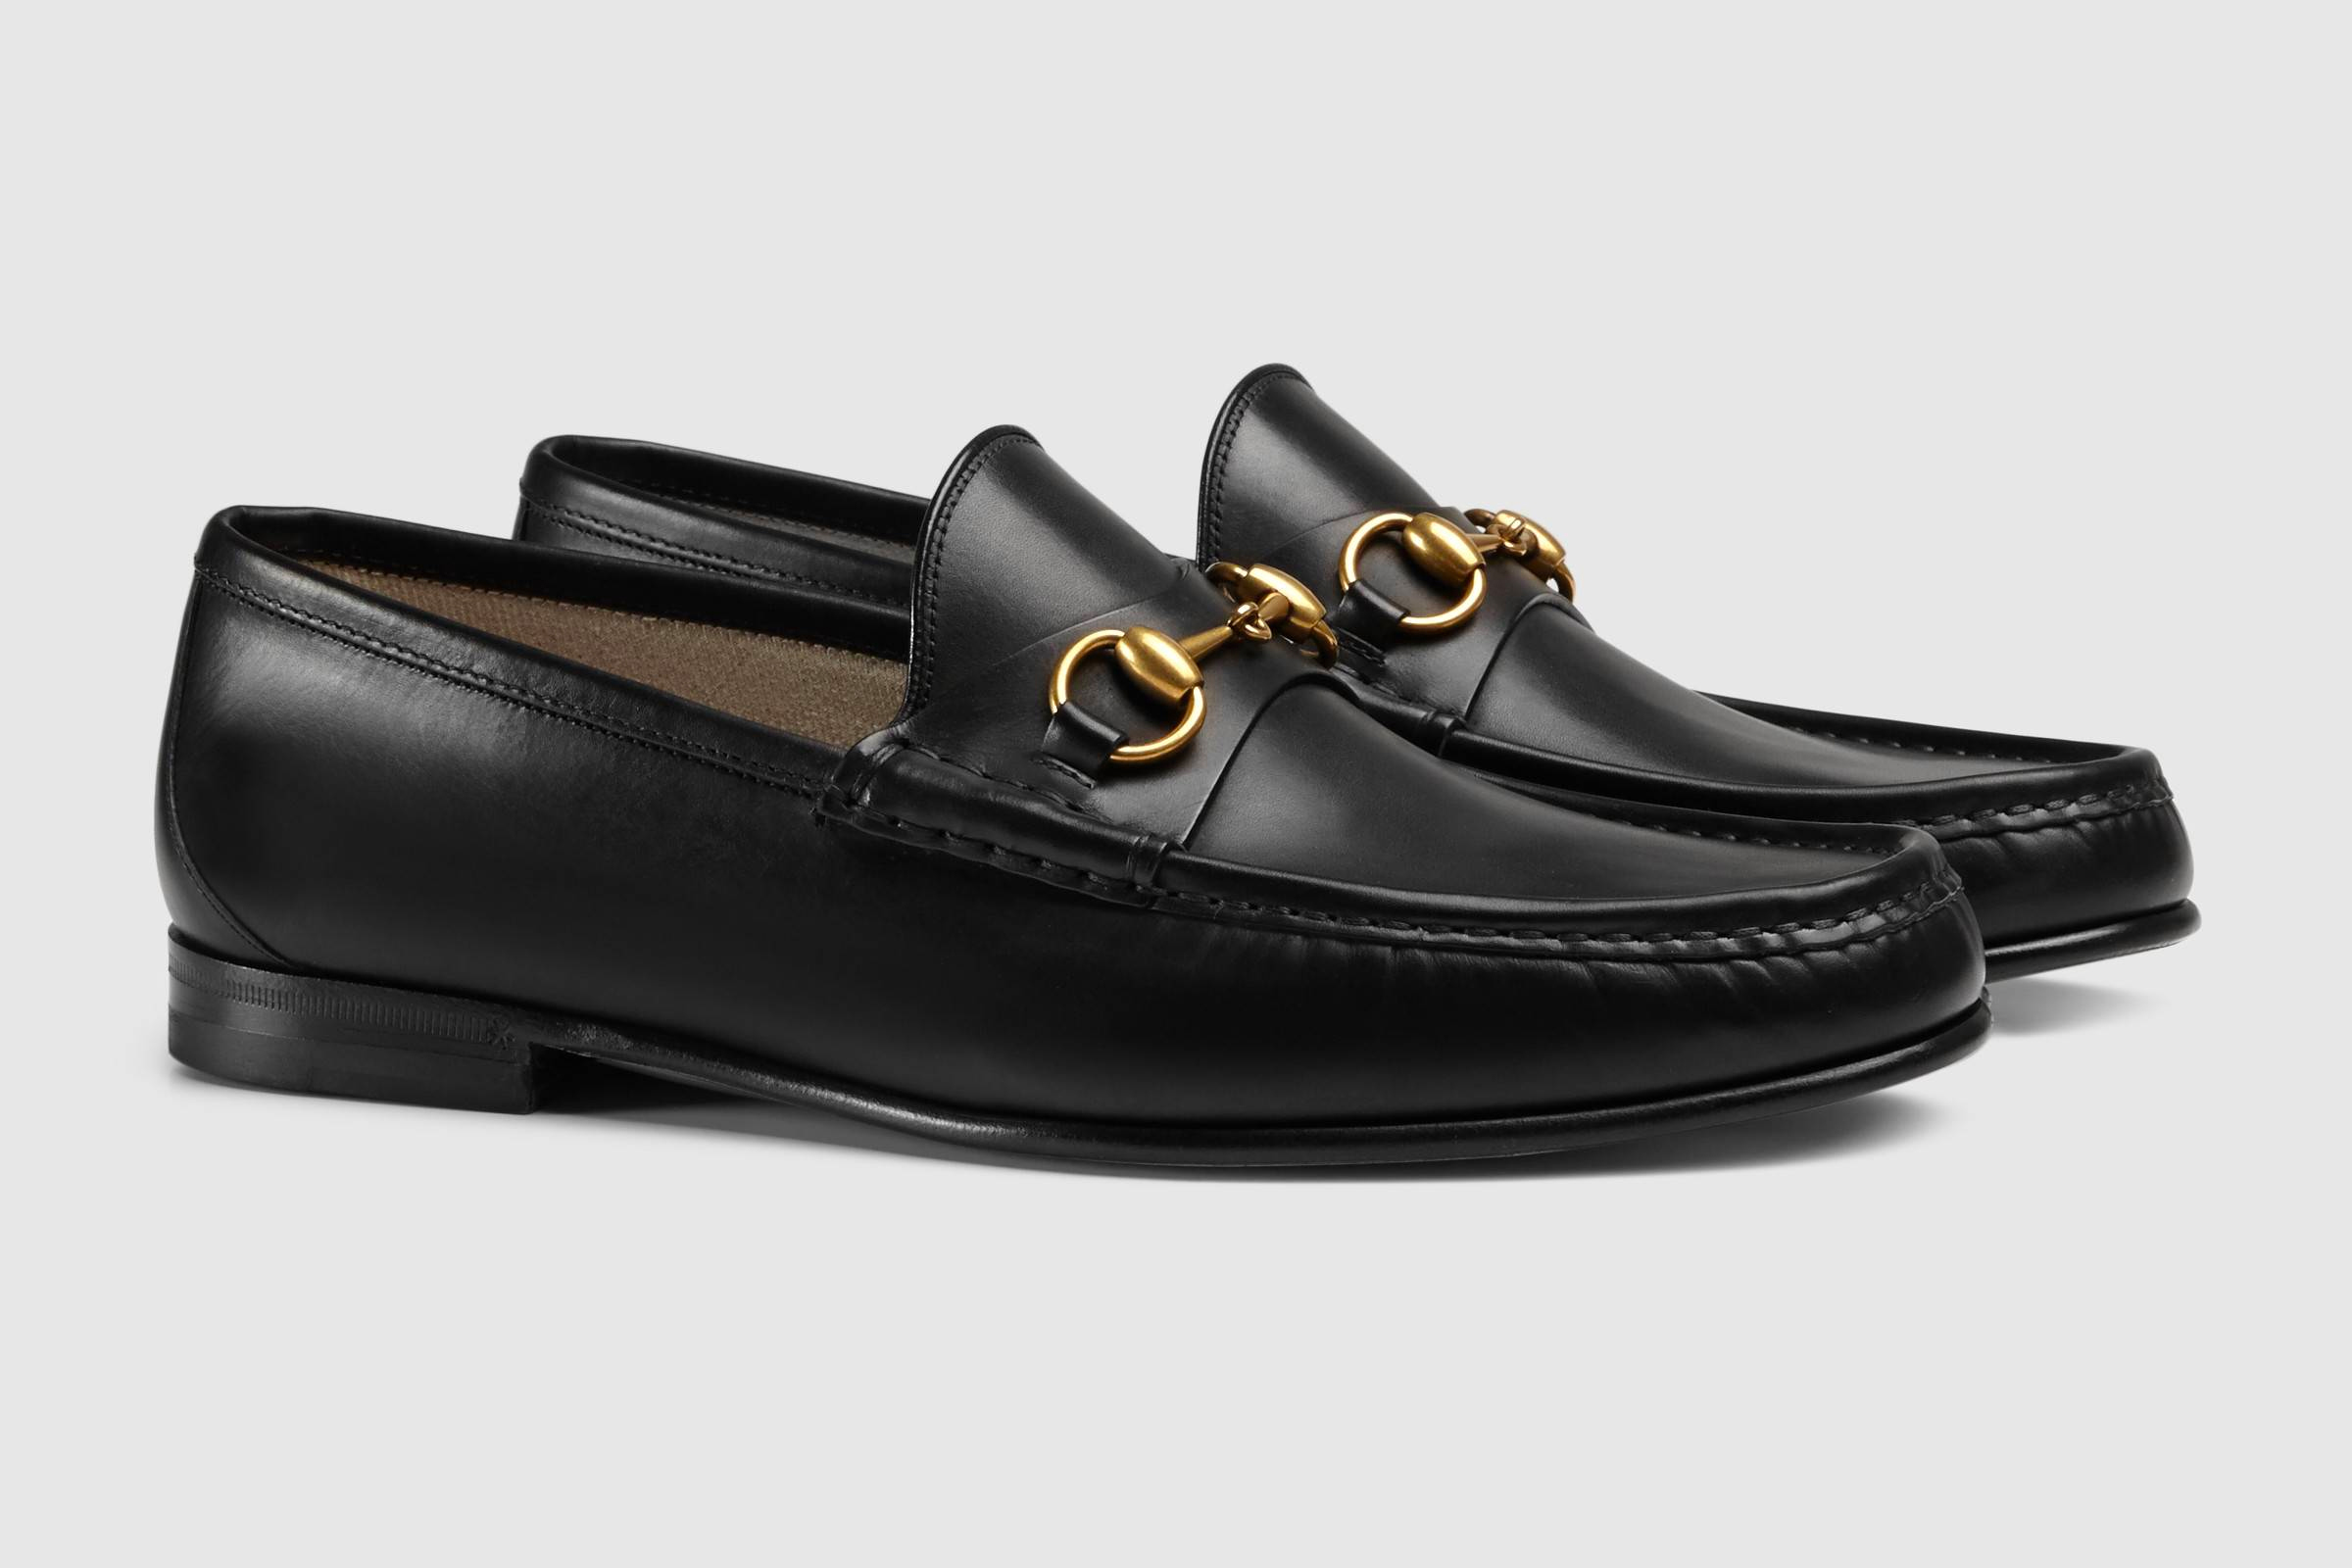 299f876f808 Bang for Your Buck  Gucci Loafers - Affordable Gucci Loafer